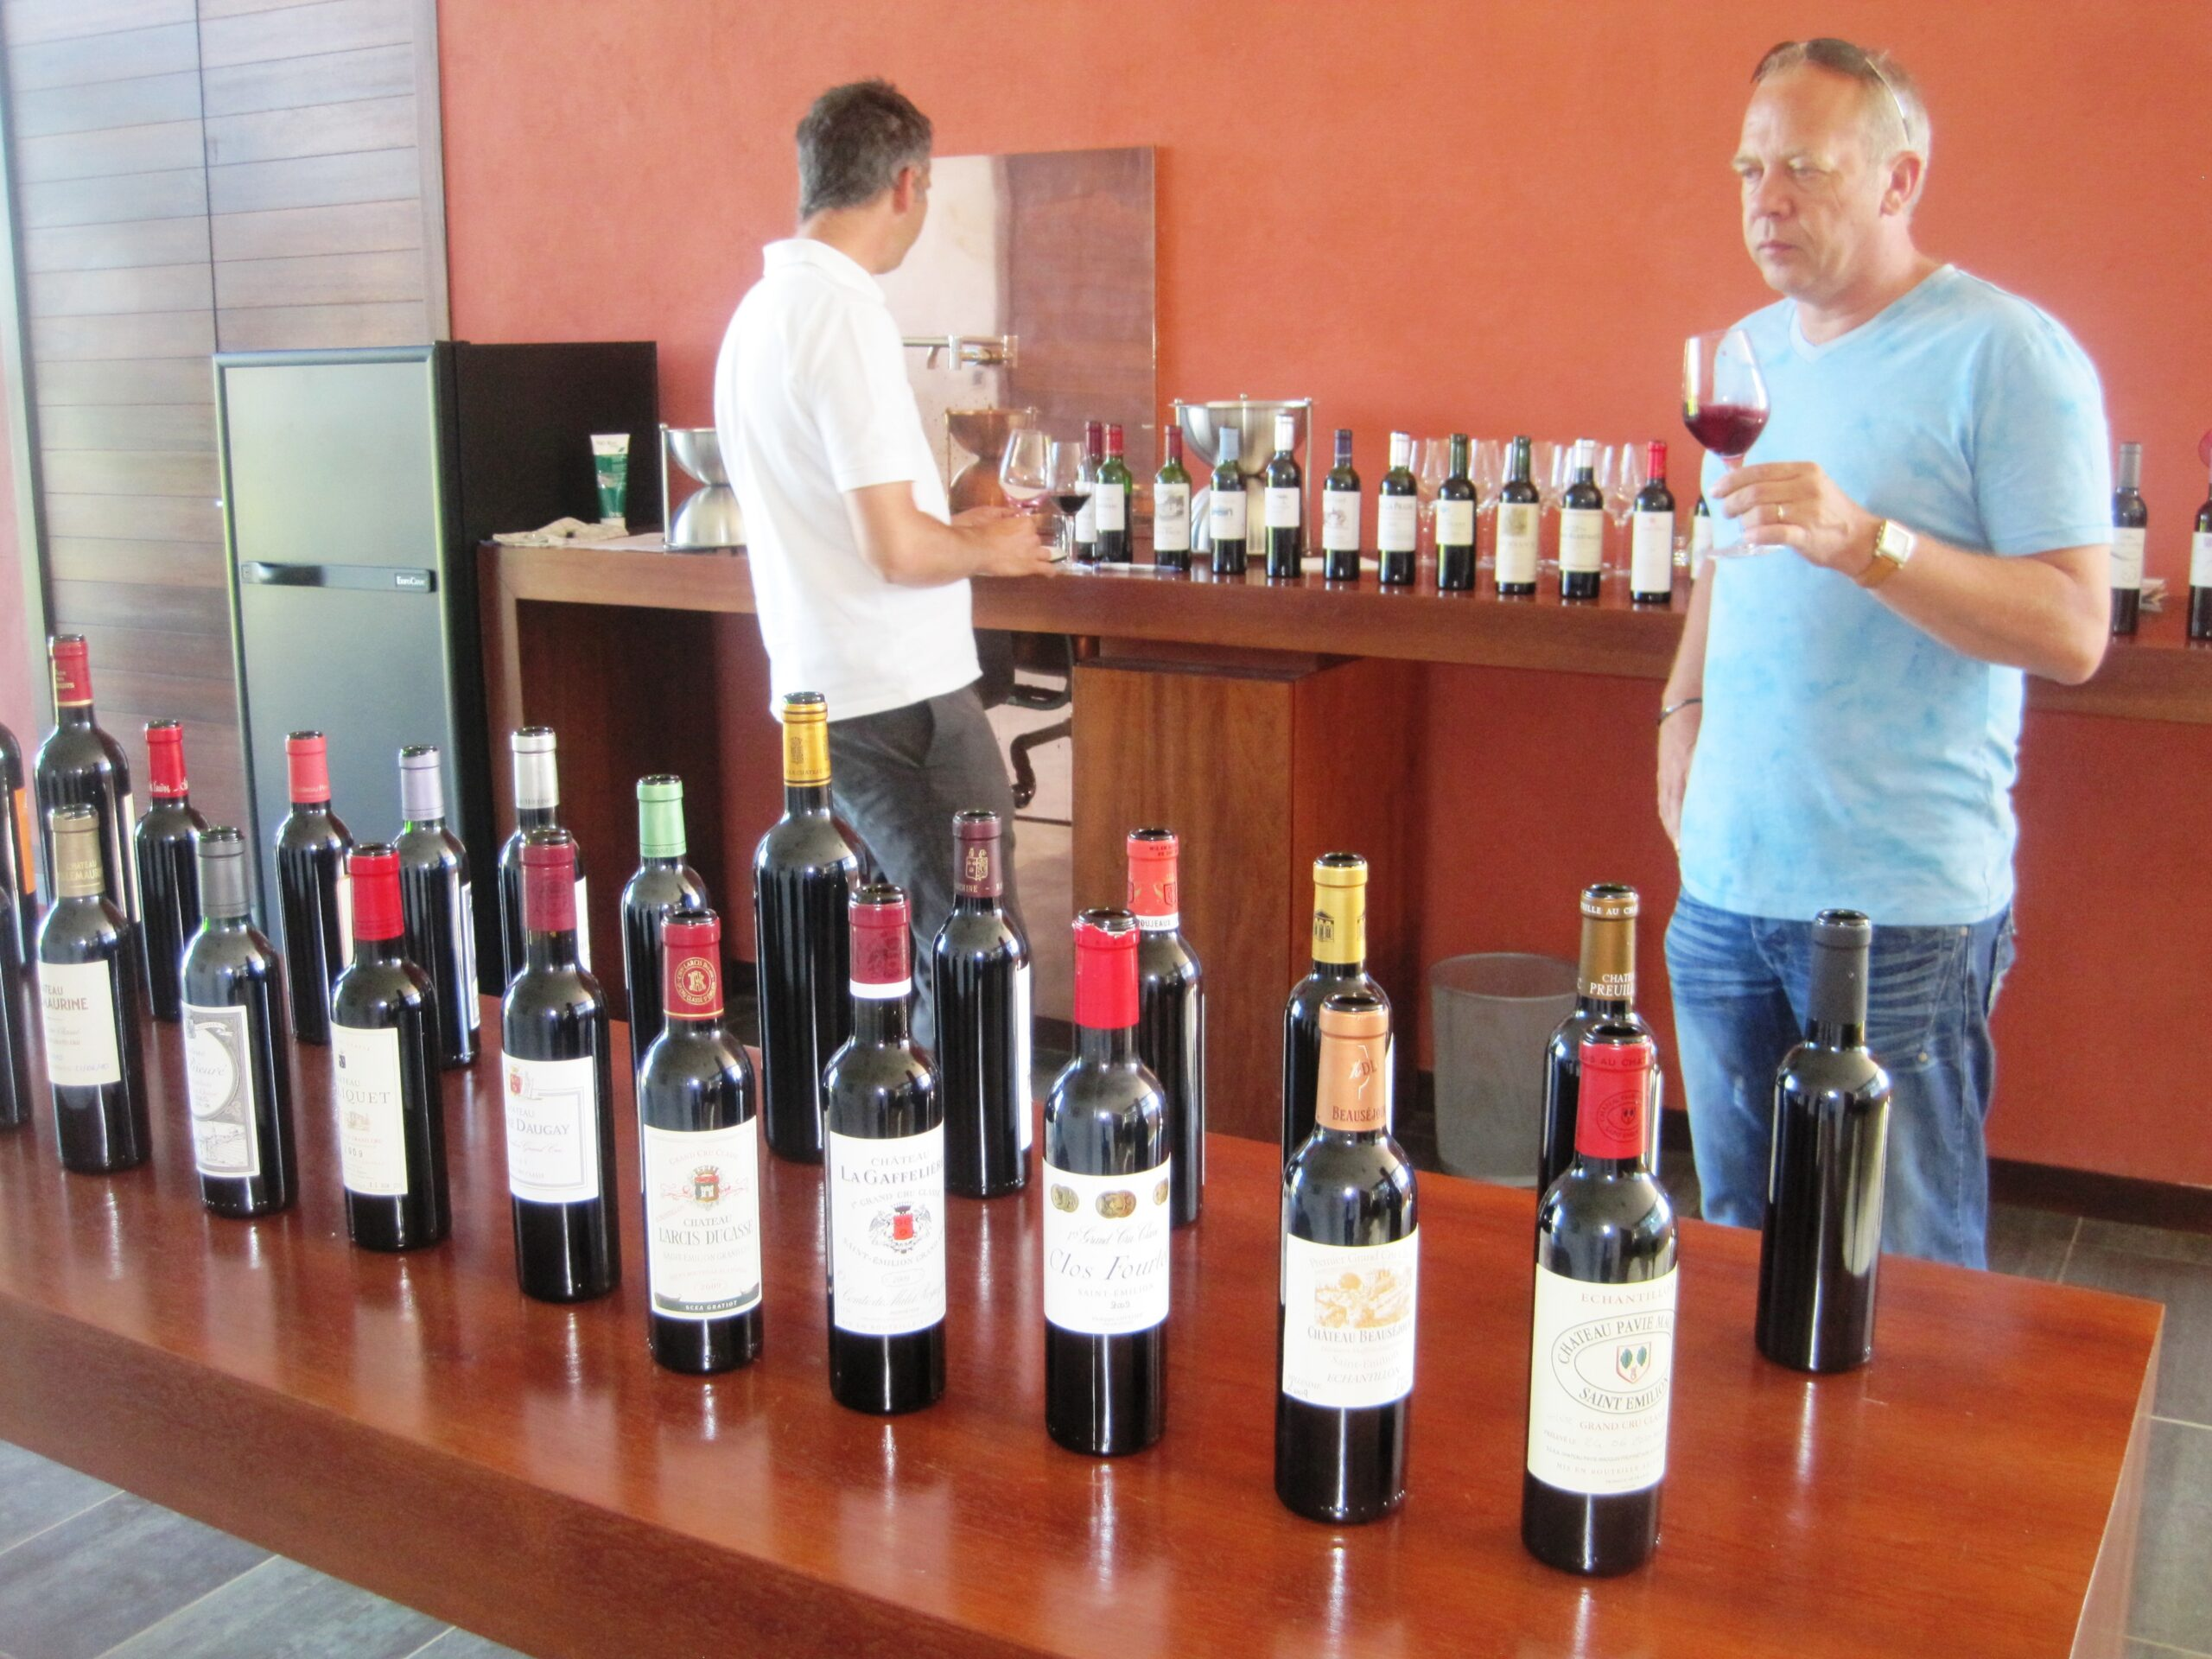 2009 Bordeaux Value Wine Buying Guide Tips on Great Value Wines